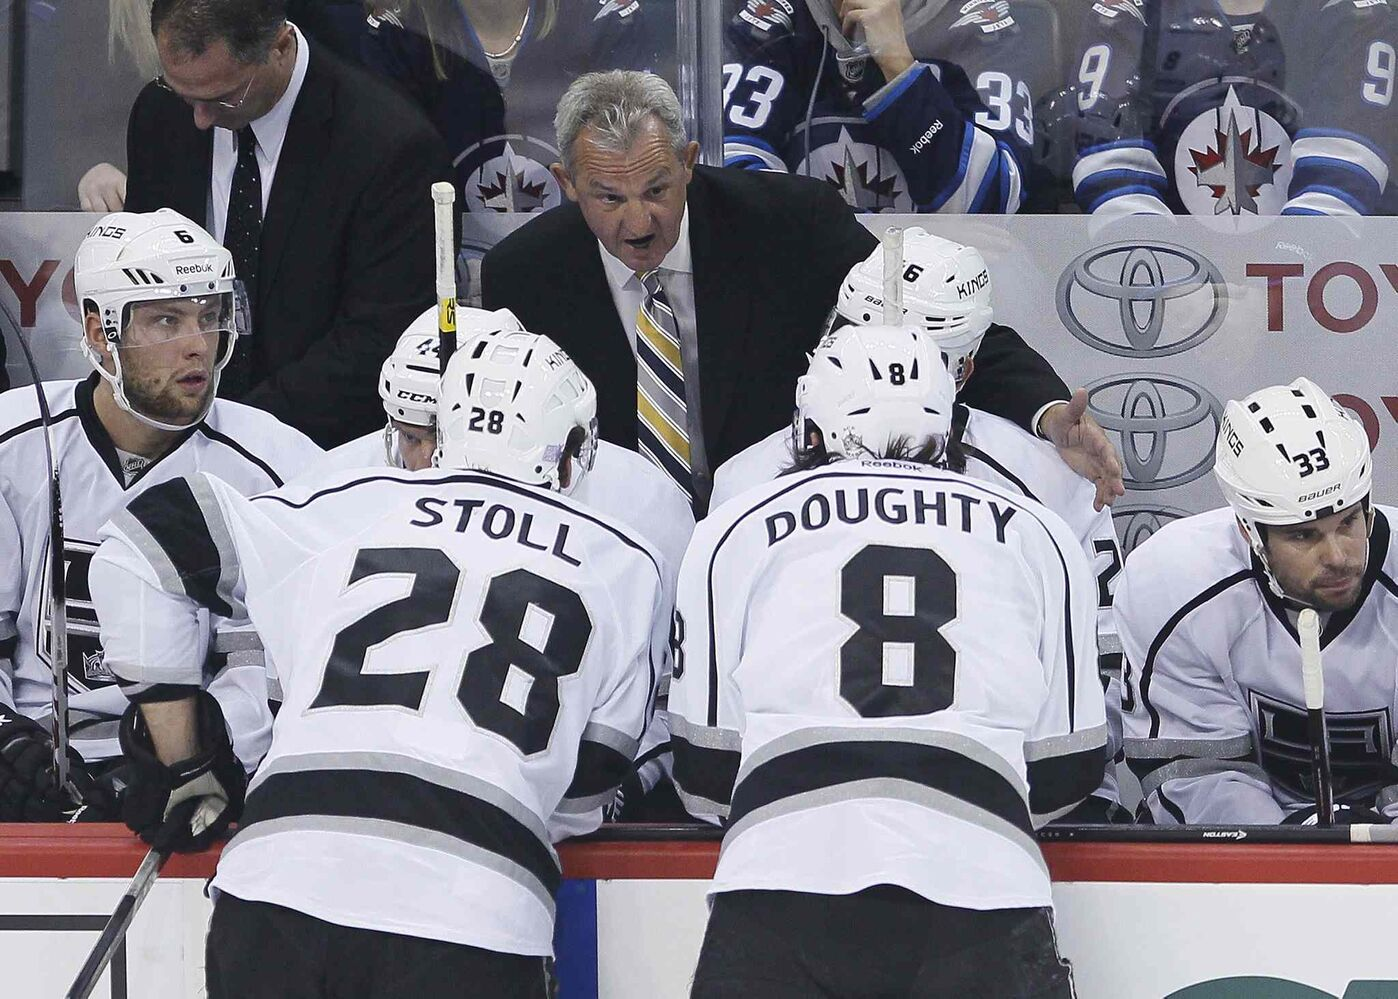 Los Angeles Kings' head coach Darryl Sutter talks to his team during the first period. (JOHN WOODS / THE CANADIAN PRESS)